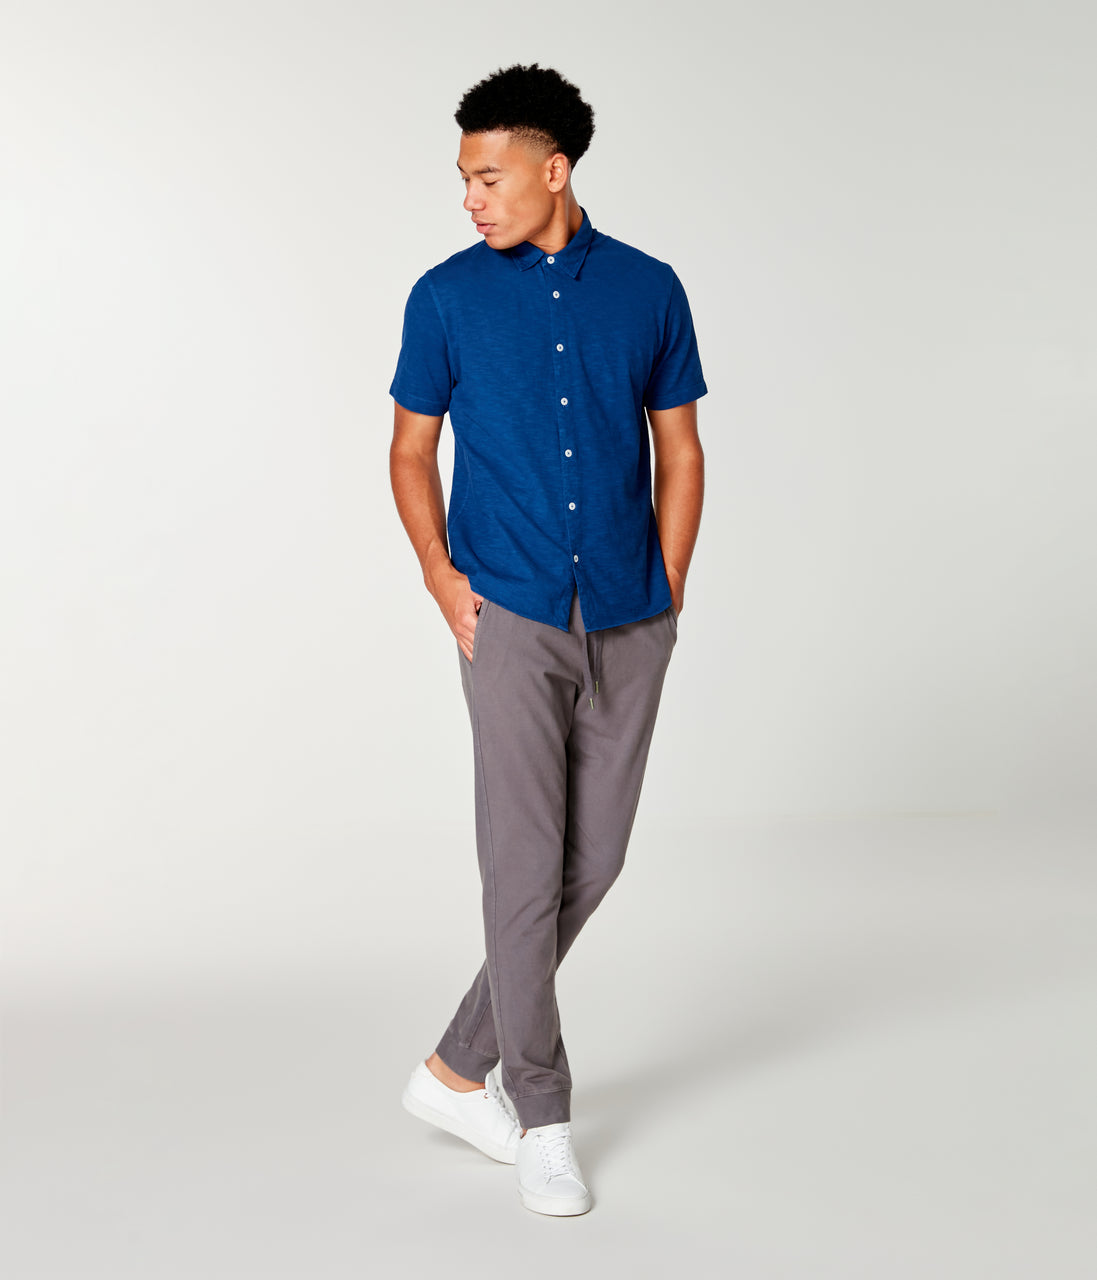 Soft Slub Jersey On-Point Shirt - Blue - Good Man Brand - Soft Slub Jersey On-Point Shirt - Blue